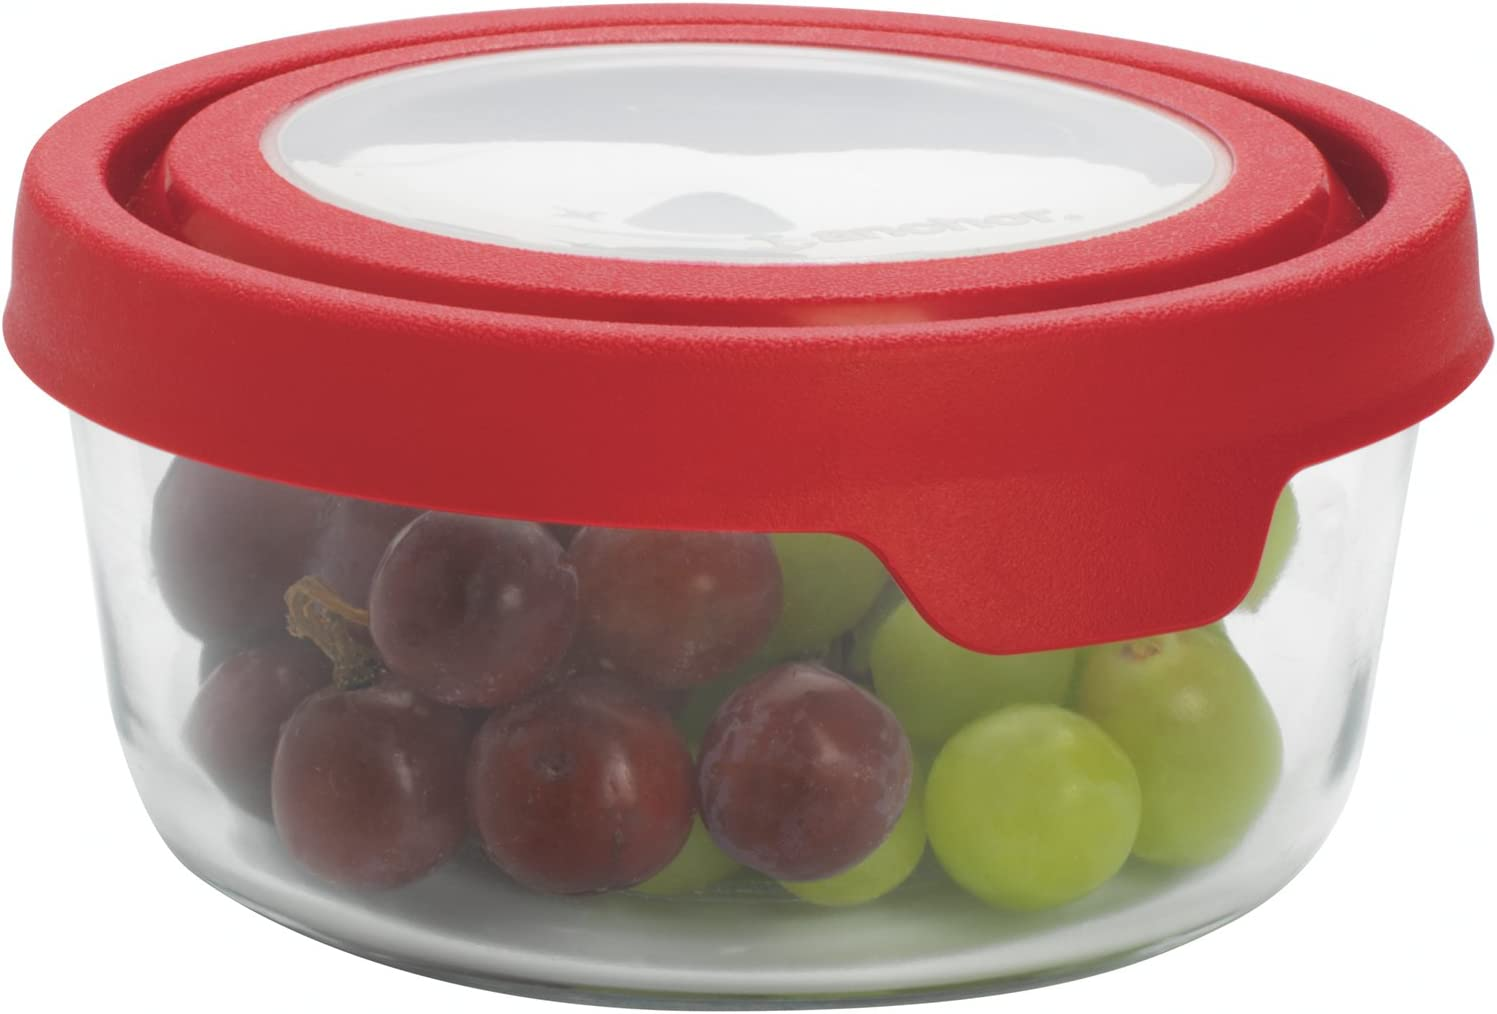 Anchor Hocking TrueSeal Glass Food Storage Container with Airtight Lid, Cherry, 4 Cup